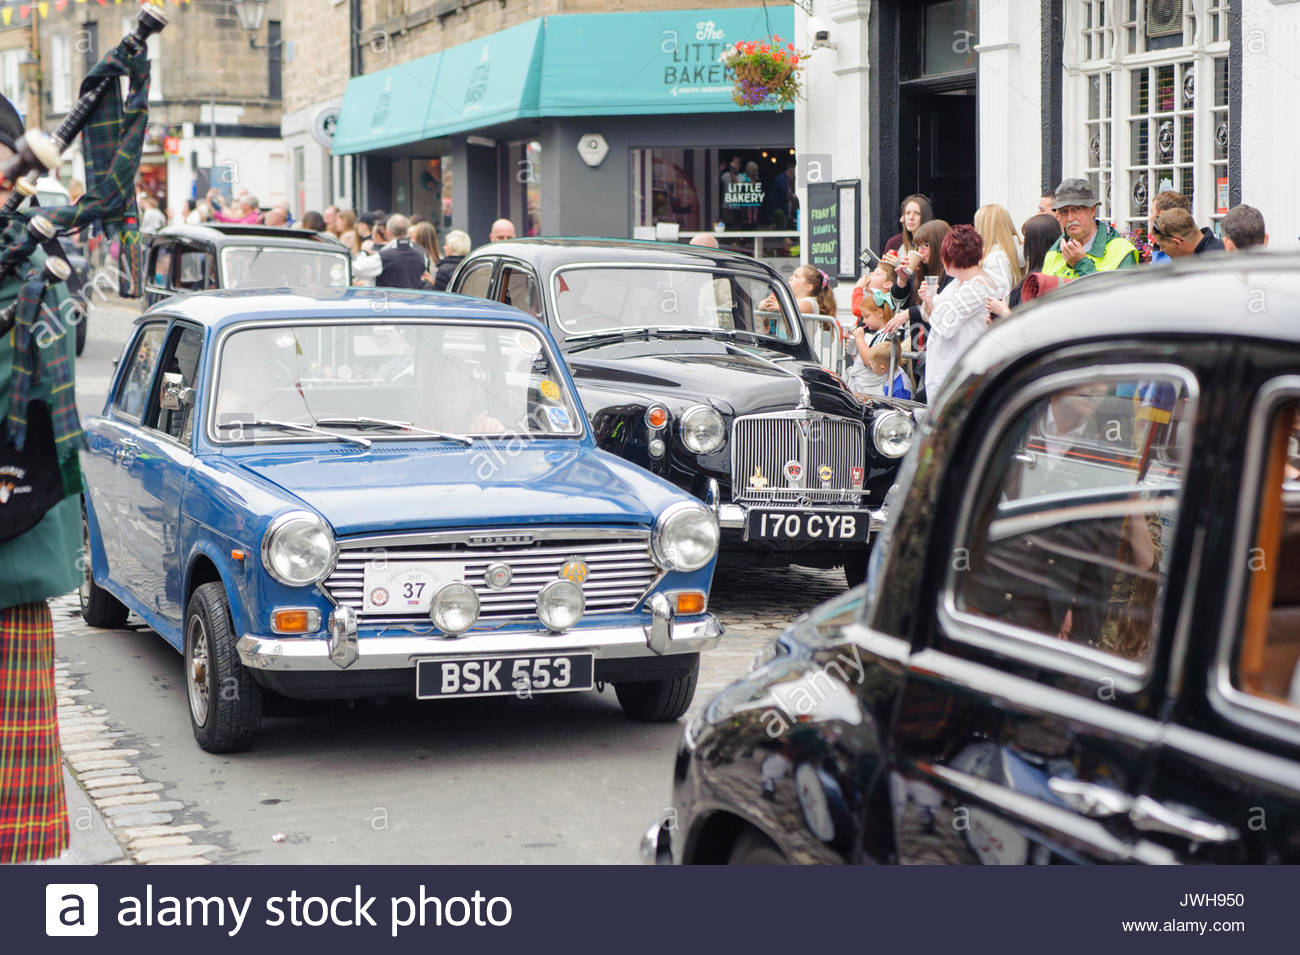 South Queensferry, UK. 12th Aug, 2017. South Queensferry, UK. August 12th, 2017. Some of the vintage vehicles as the procession winds it's way along the High Street. QueensferryÕs annual Fair is a week-long event and is principally a festival of sports and entertainments for the towns schoolchildren, culminating in a procession through the town and the crowning of the Fair Queen. Credit: Roger Gaisford/Alamy Live News - Stock Image